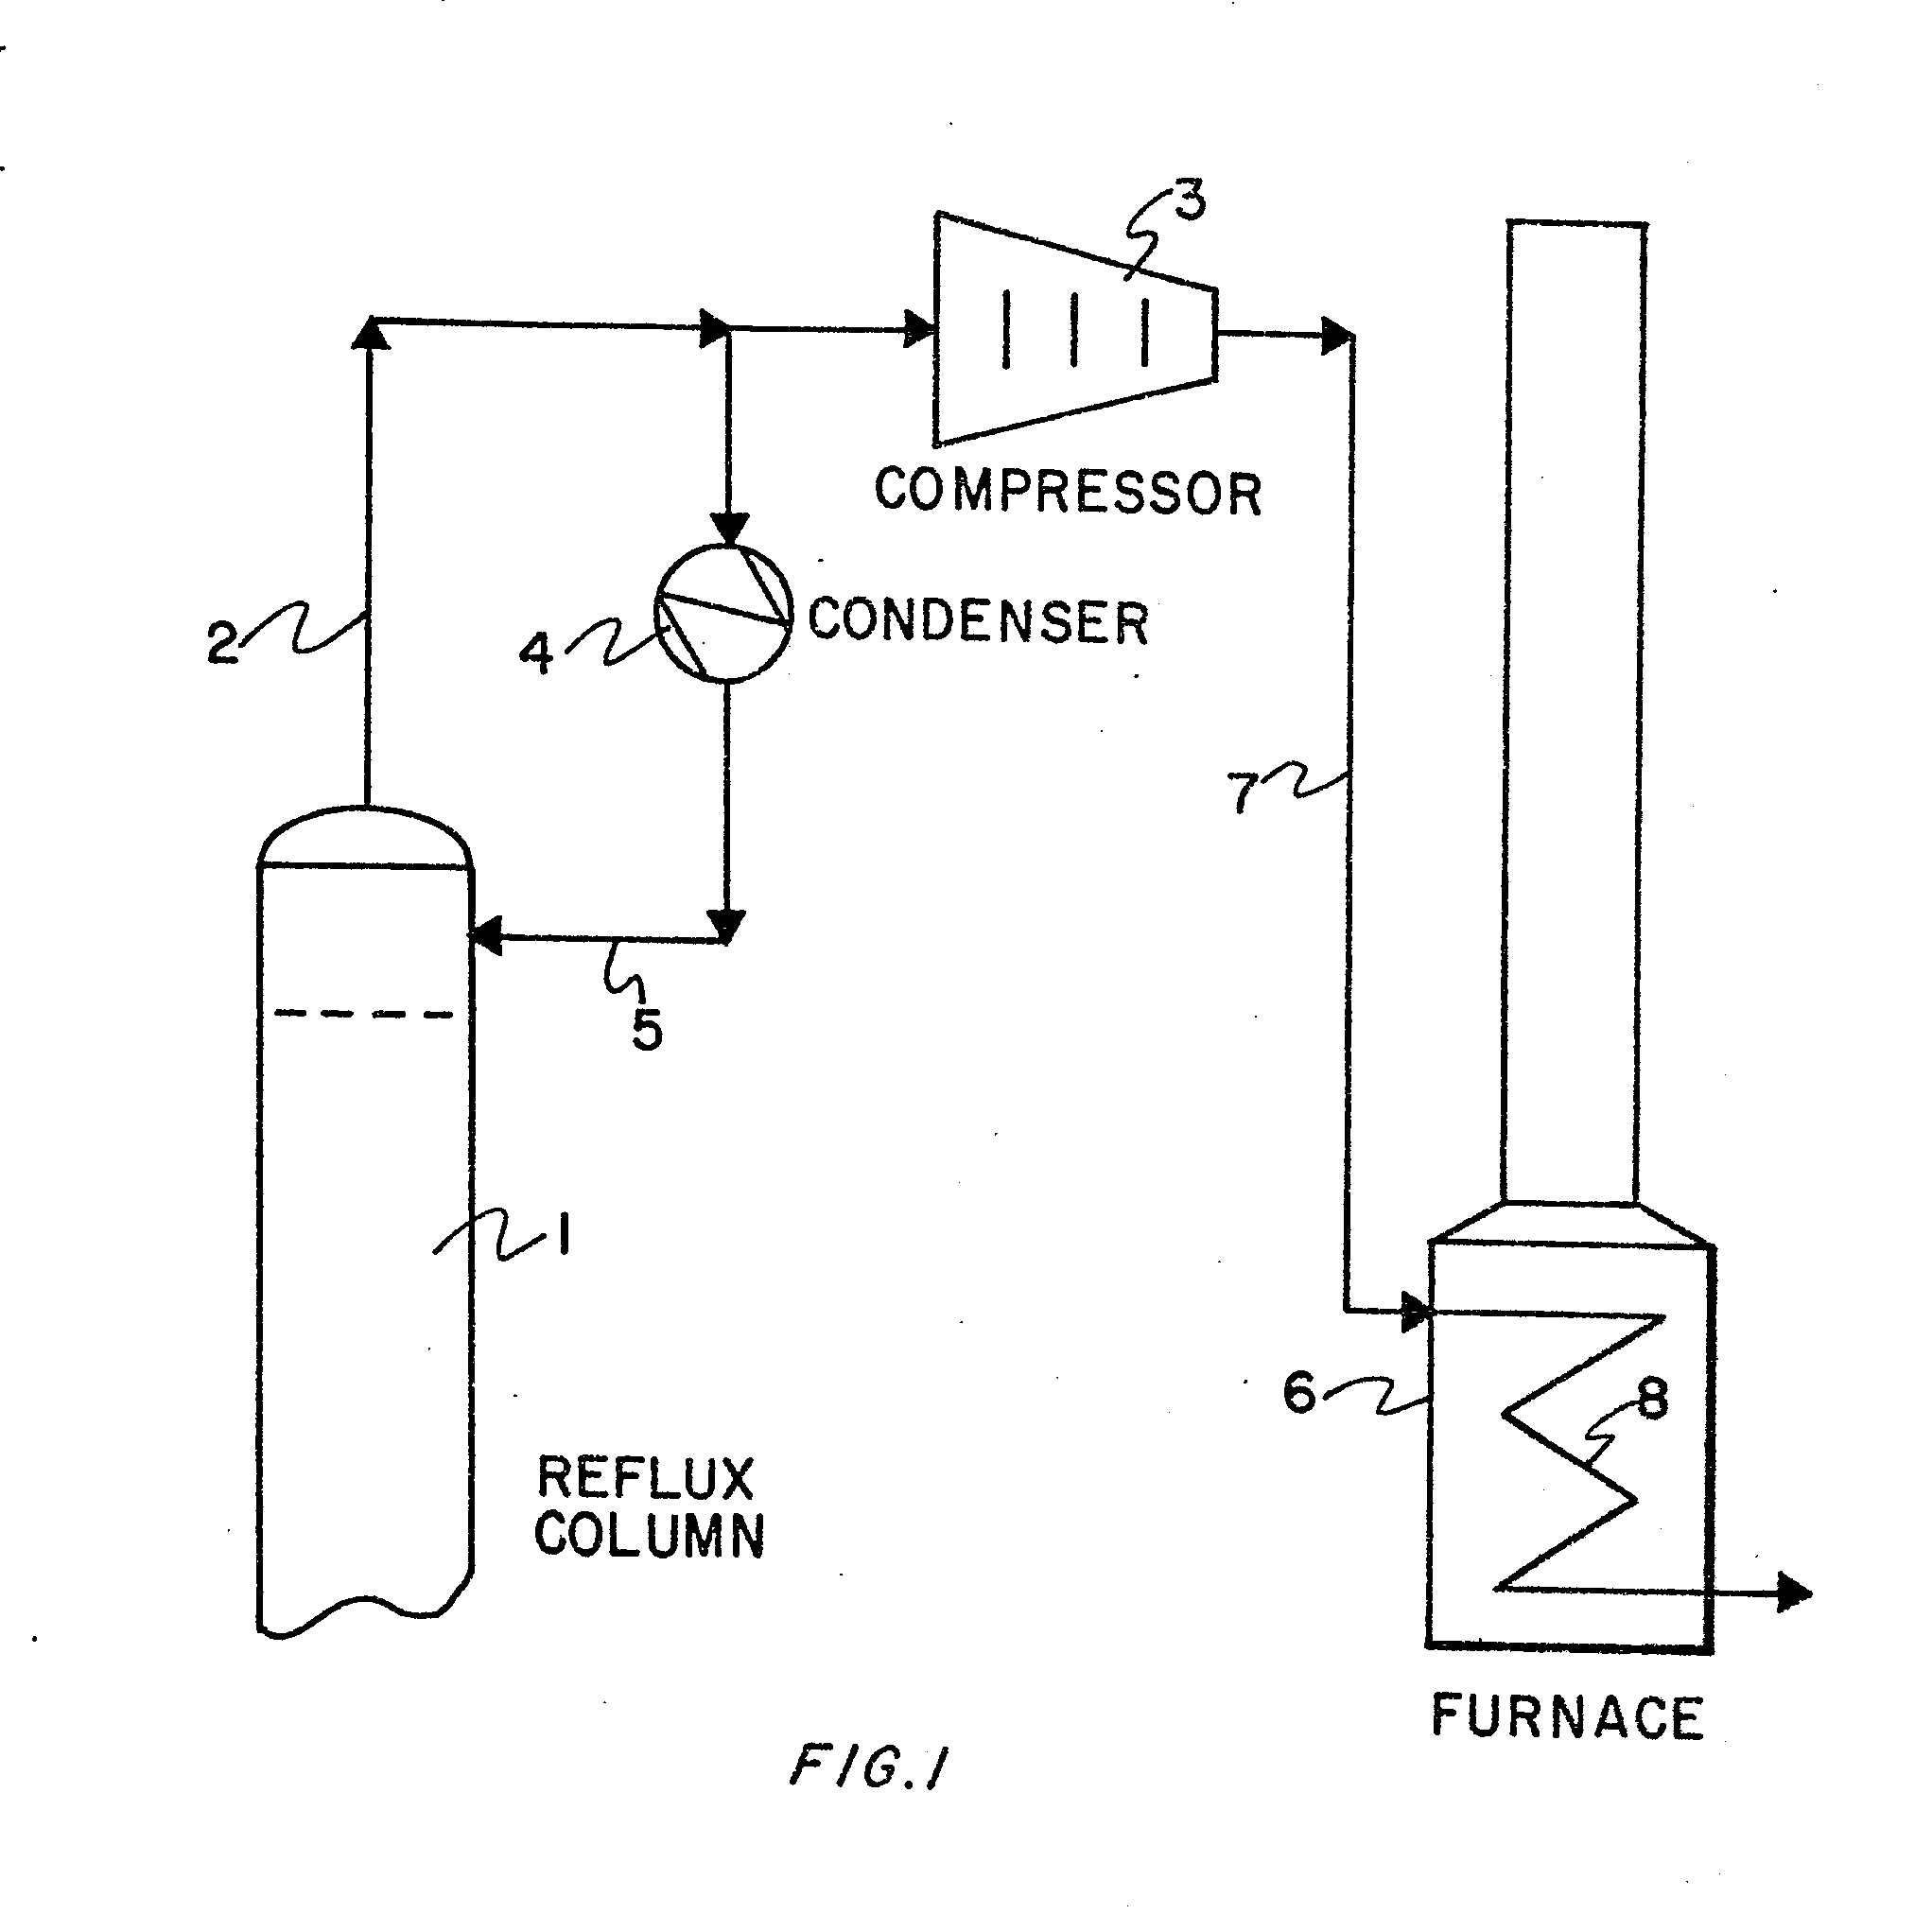 Patent Ep0111310a1 Process For Preparing Vinyl Chloride